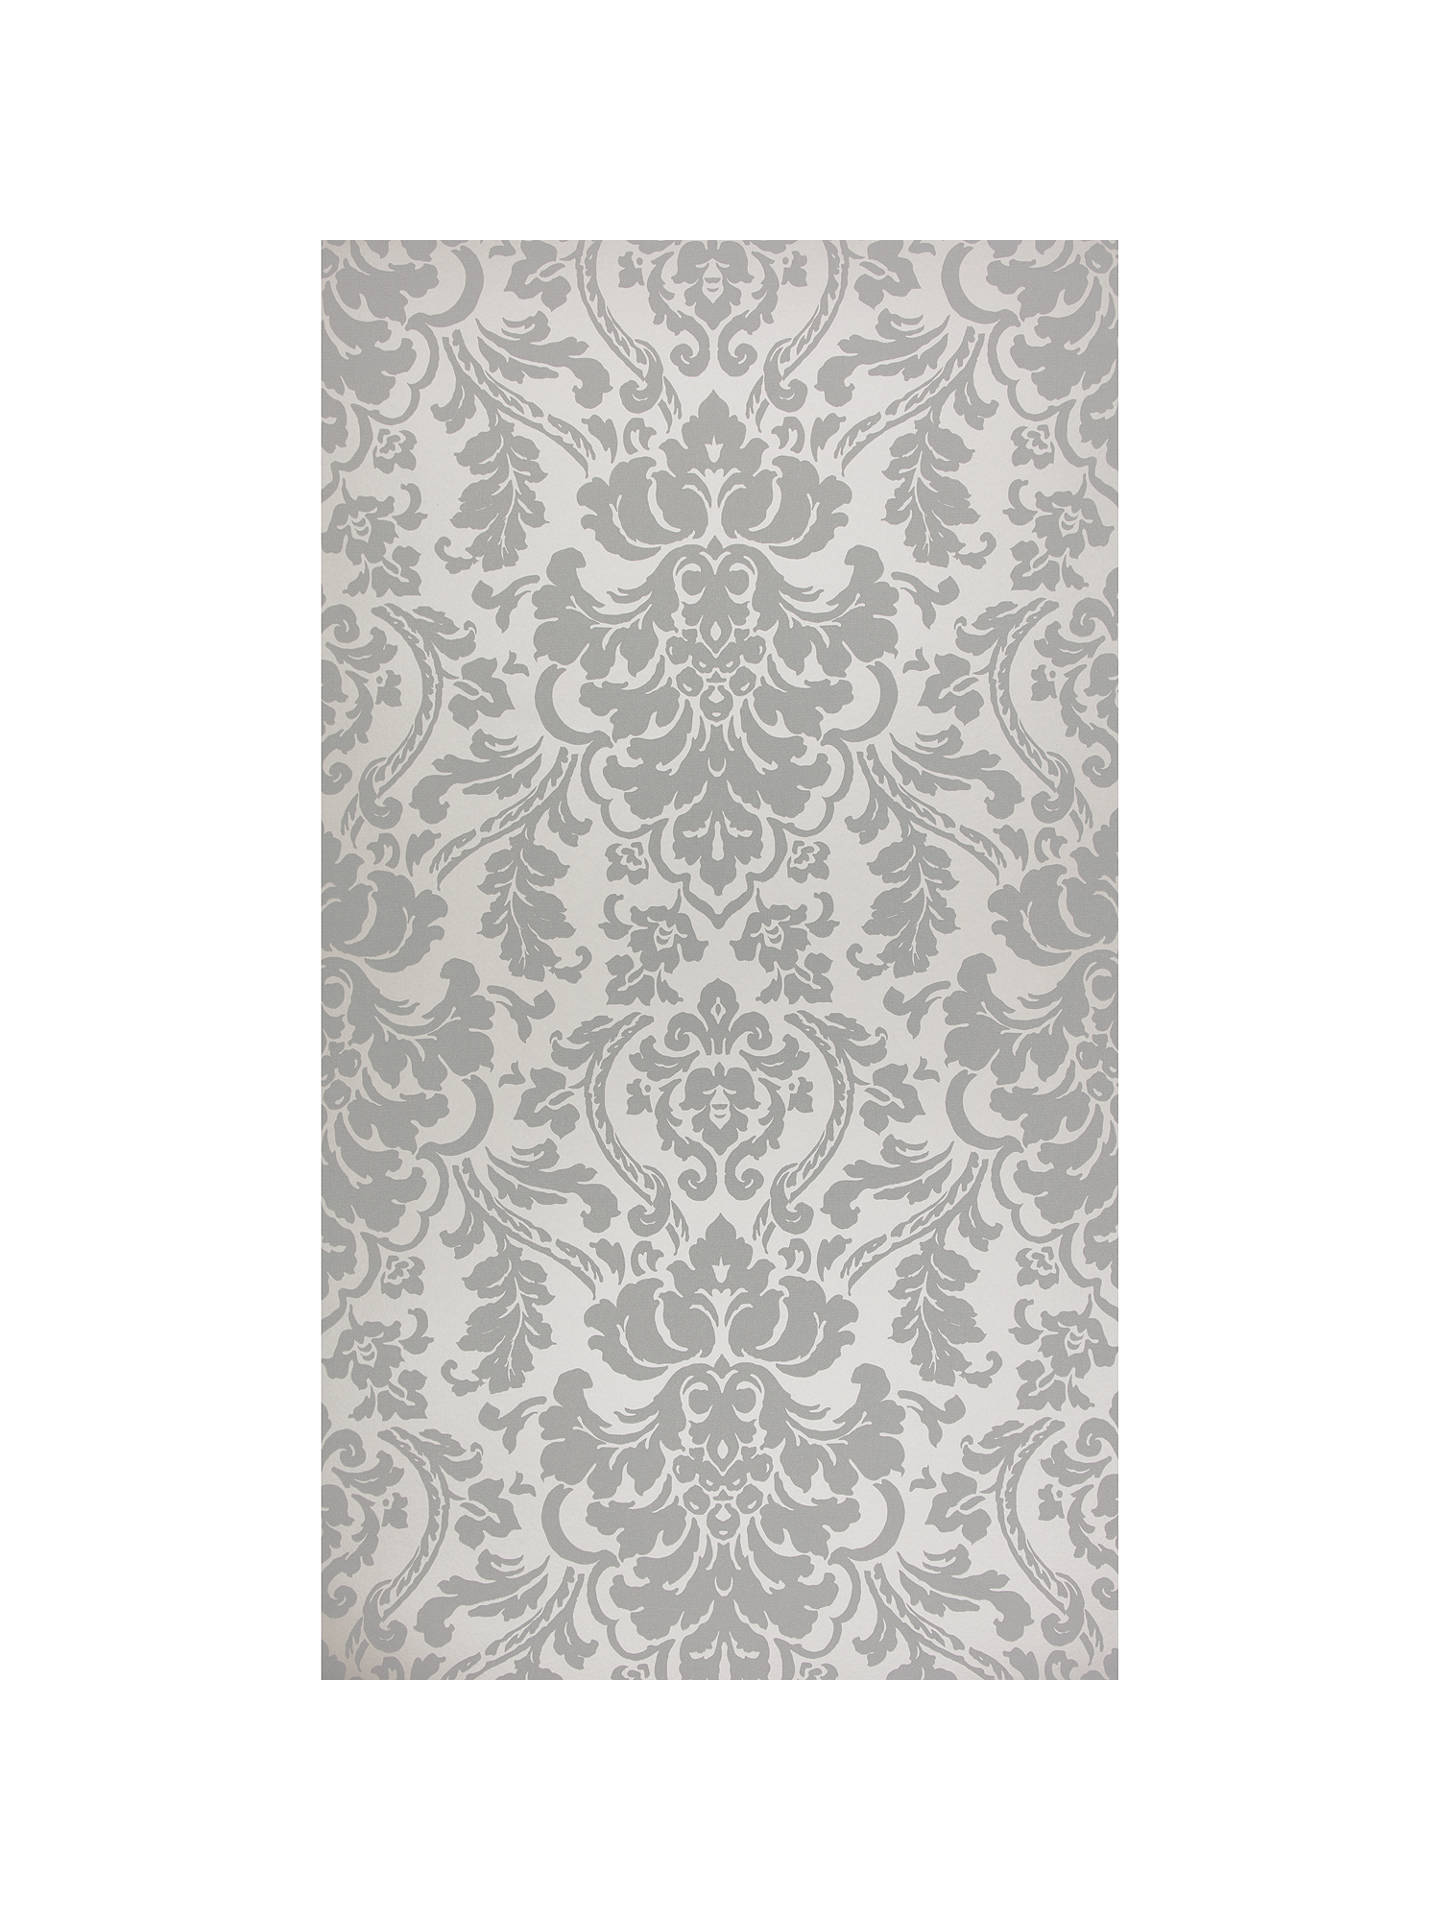 BuyJohn Lewis Partners Stockbridge Damask Wallpaper Blue Grey Online At Johnlewis